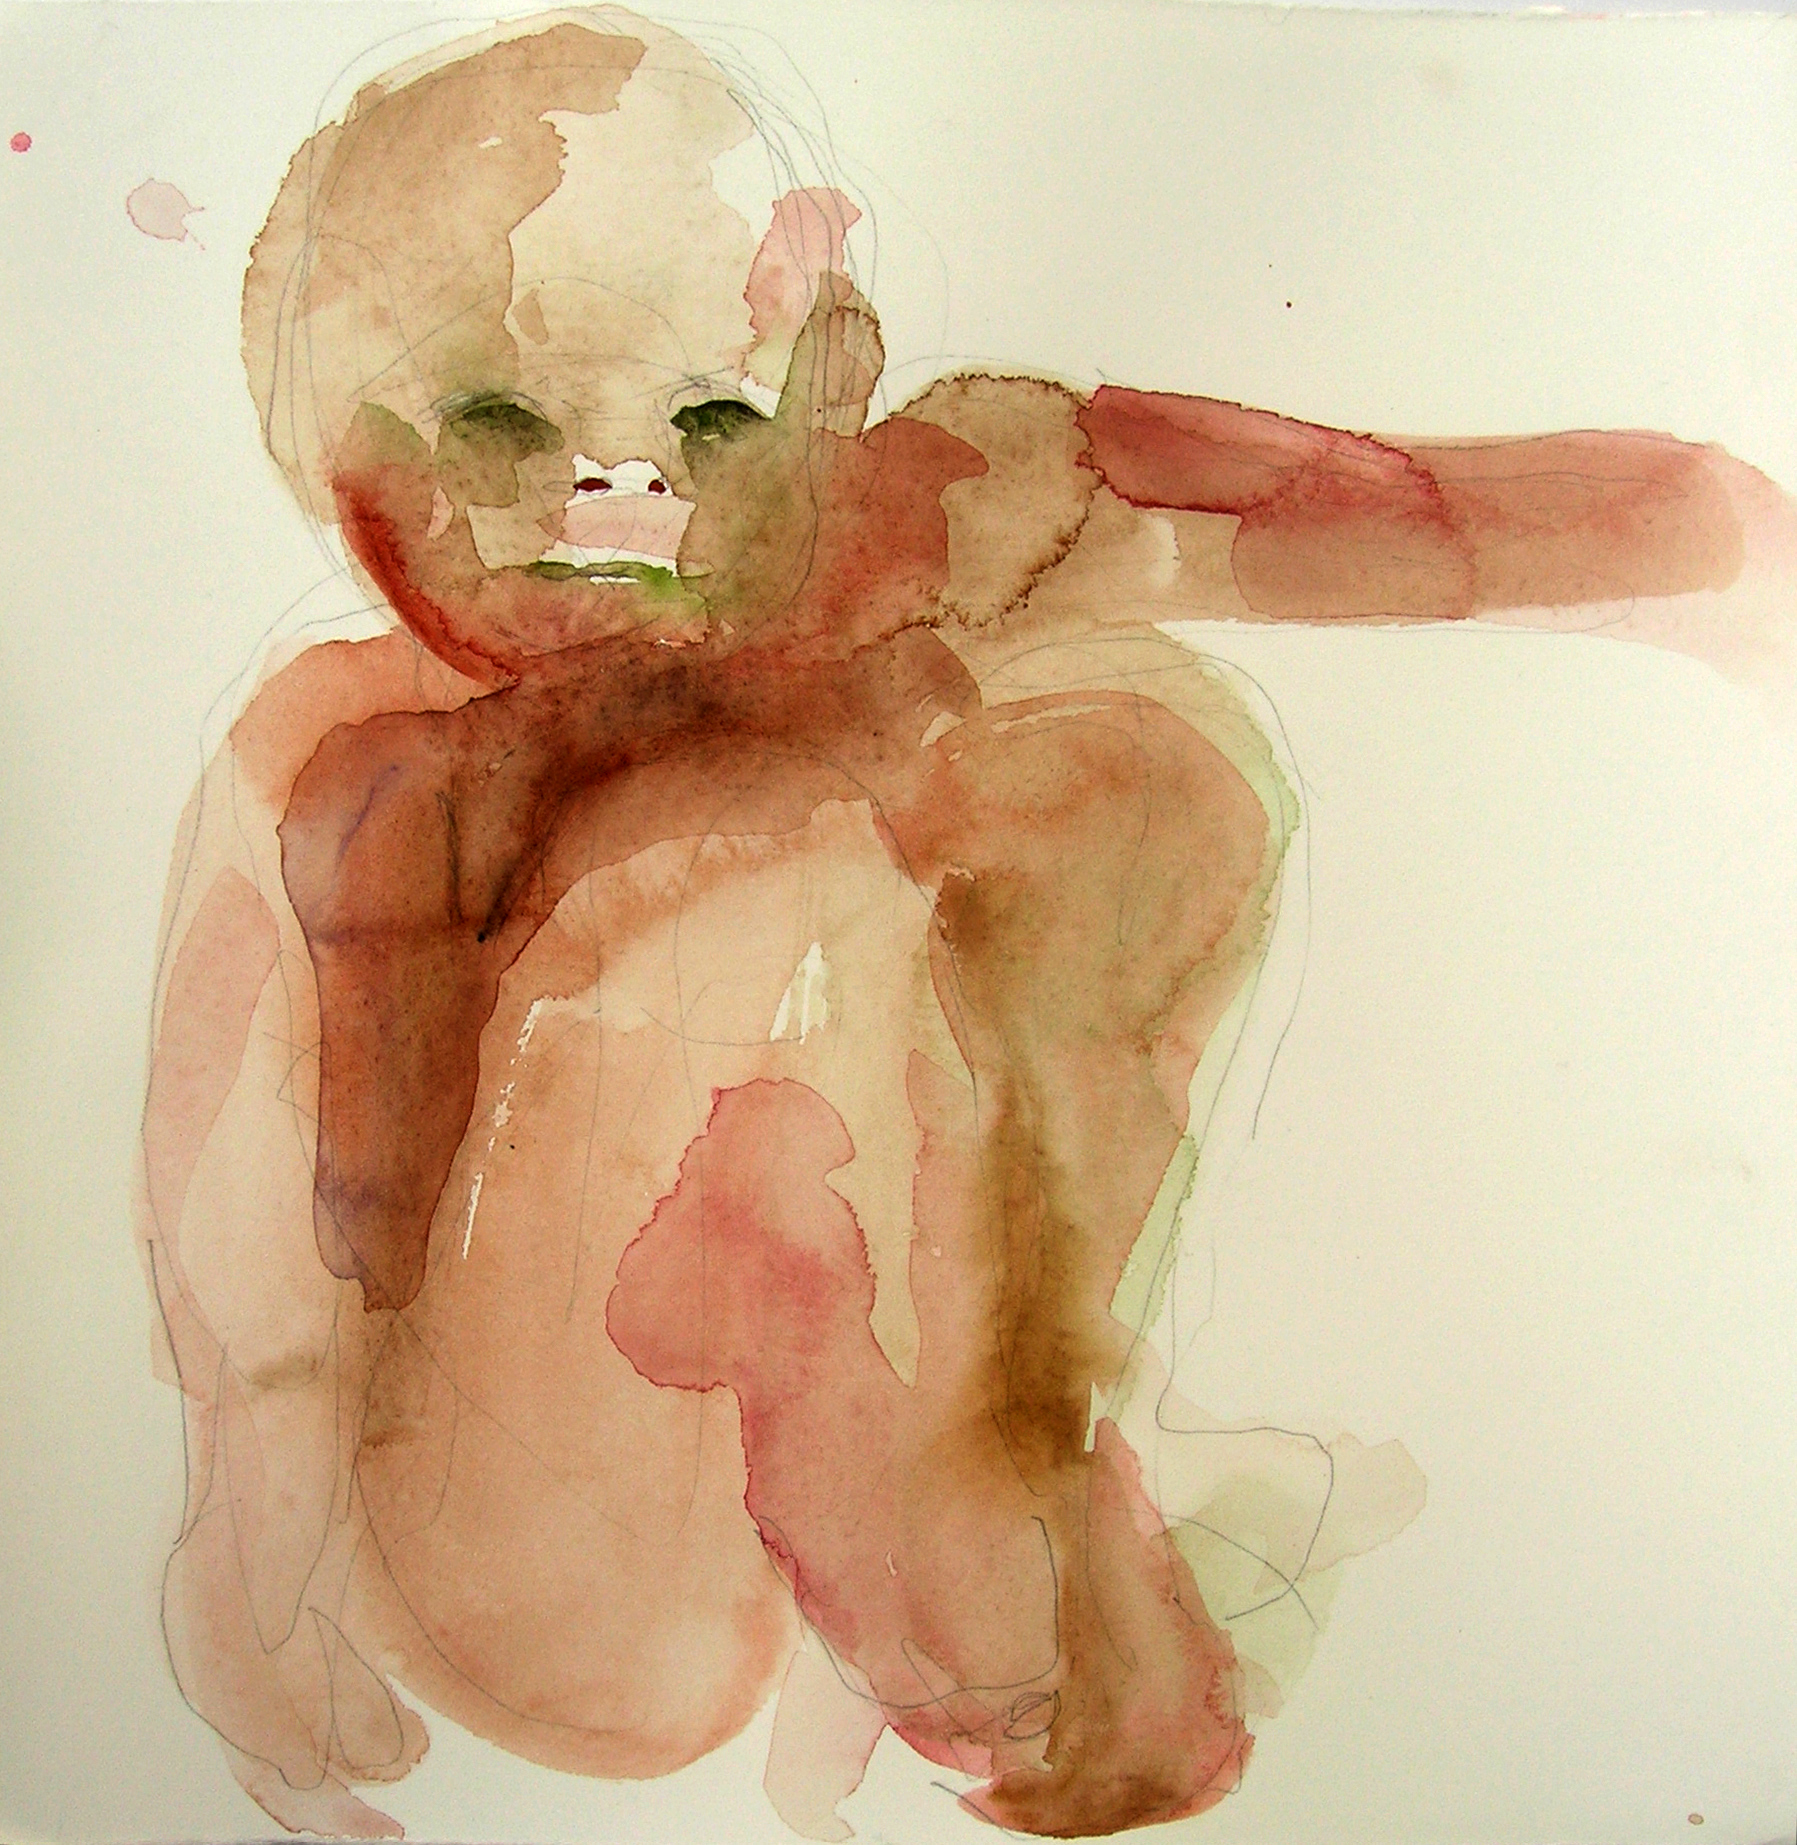 Sentar 19, 2007, Graphite and watercolor on paper, 13 X 12 in.